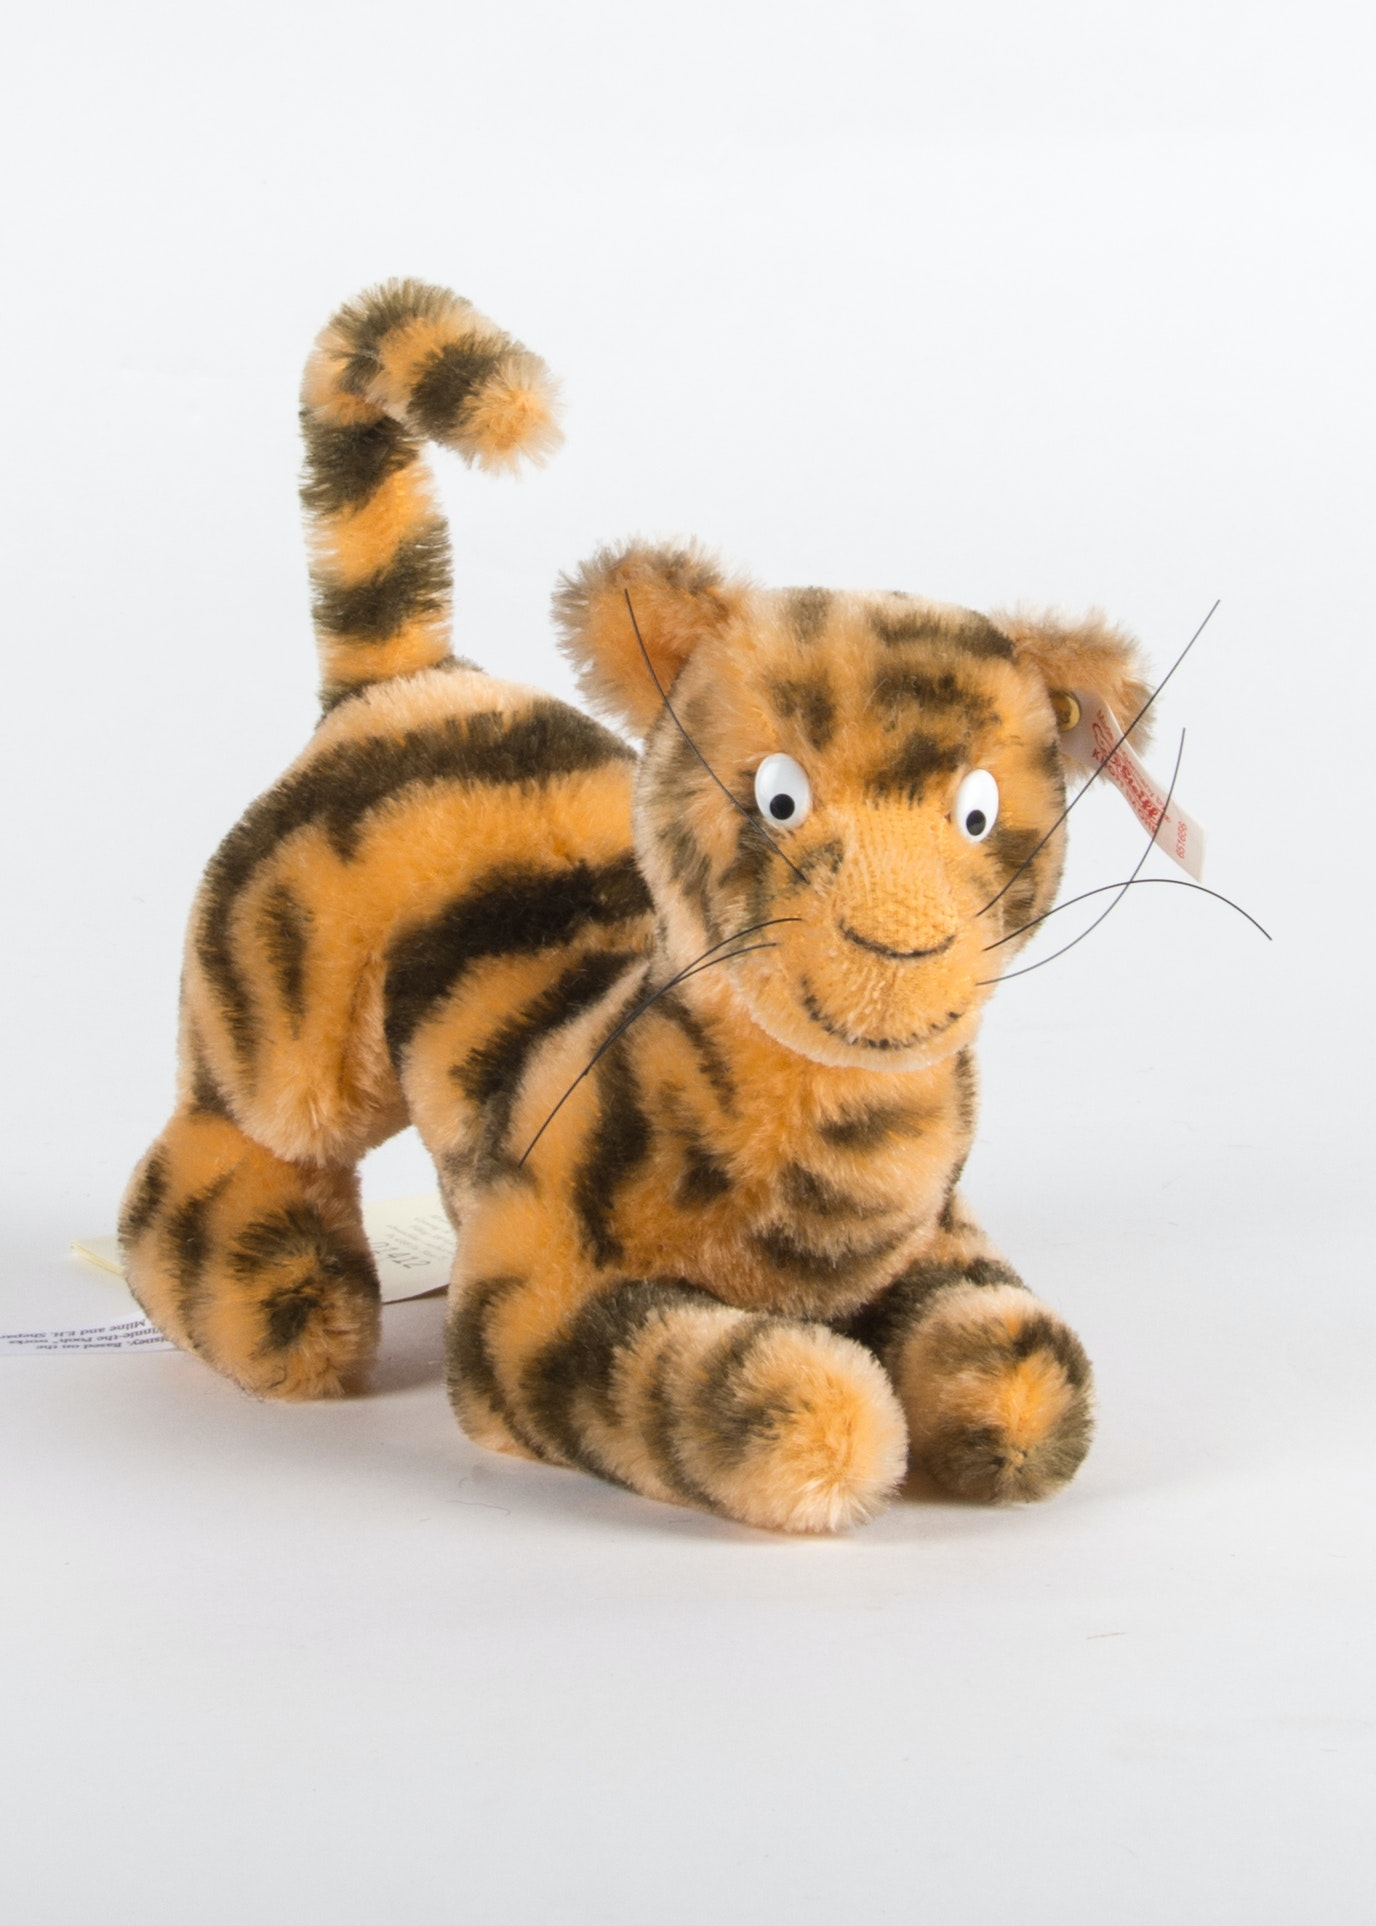 steiff classic pooh �tiggerquot from winnie the pooh ebth